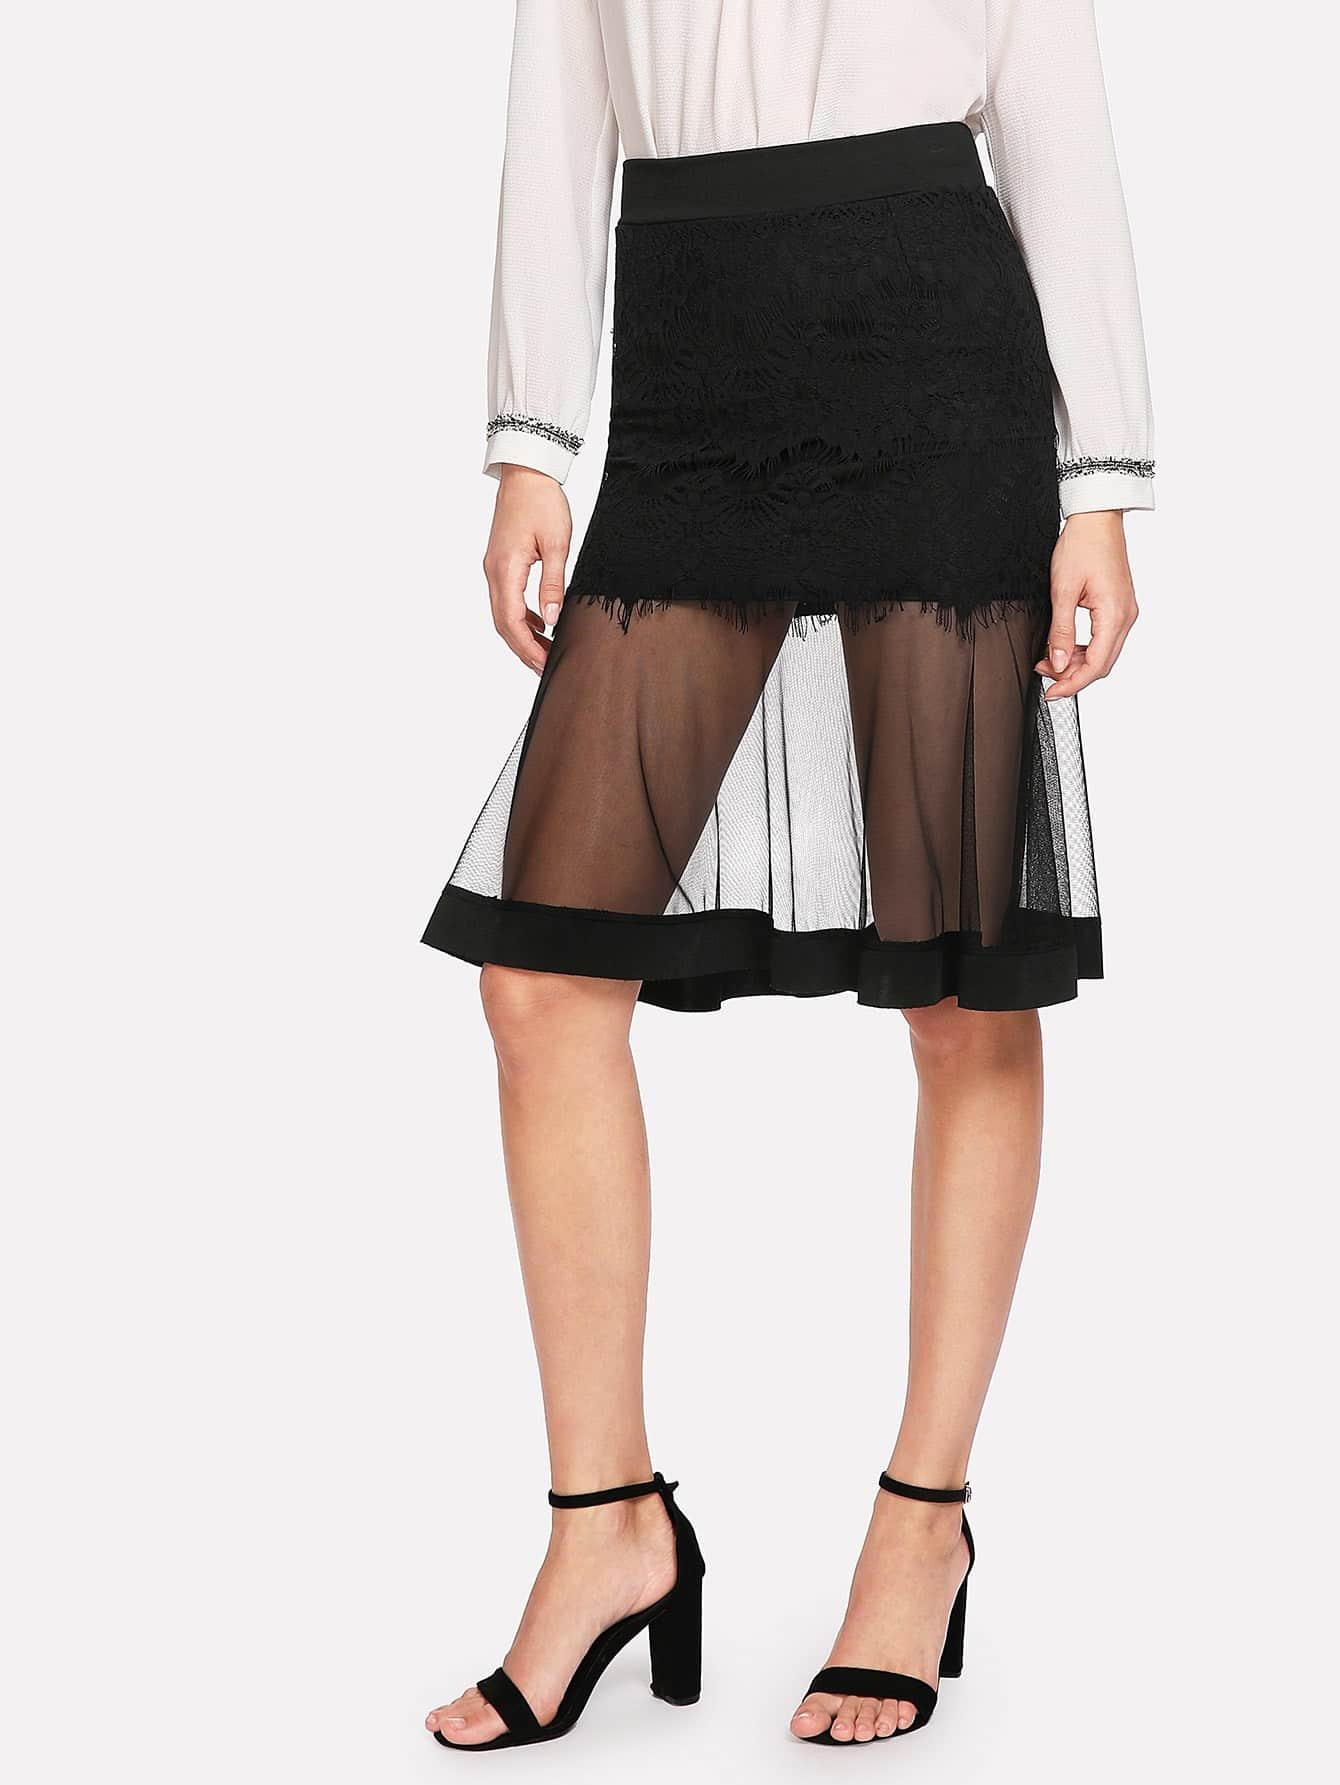 Lace Panel Sheer Mesh Skirt sheer mesh panel colorblock legging